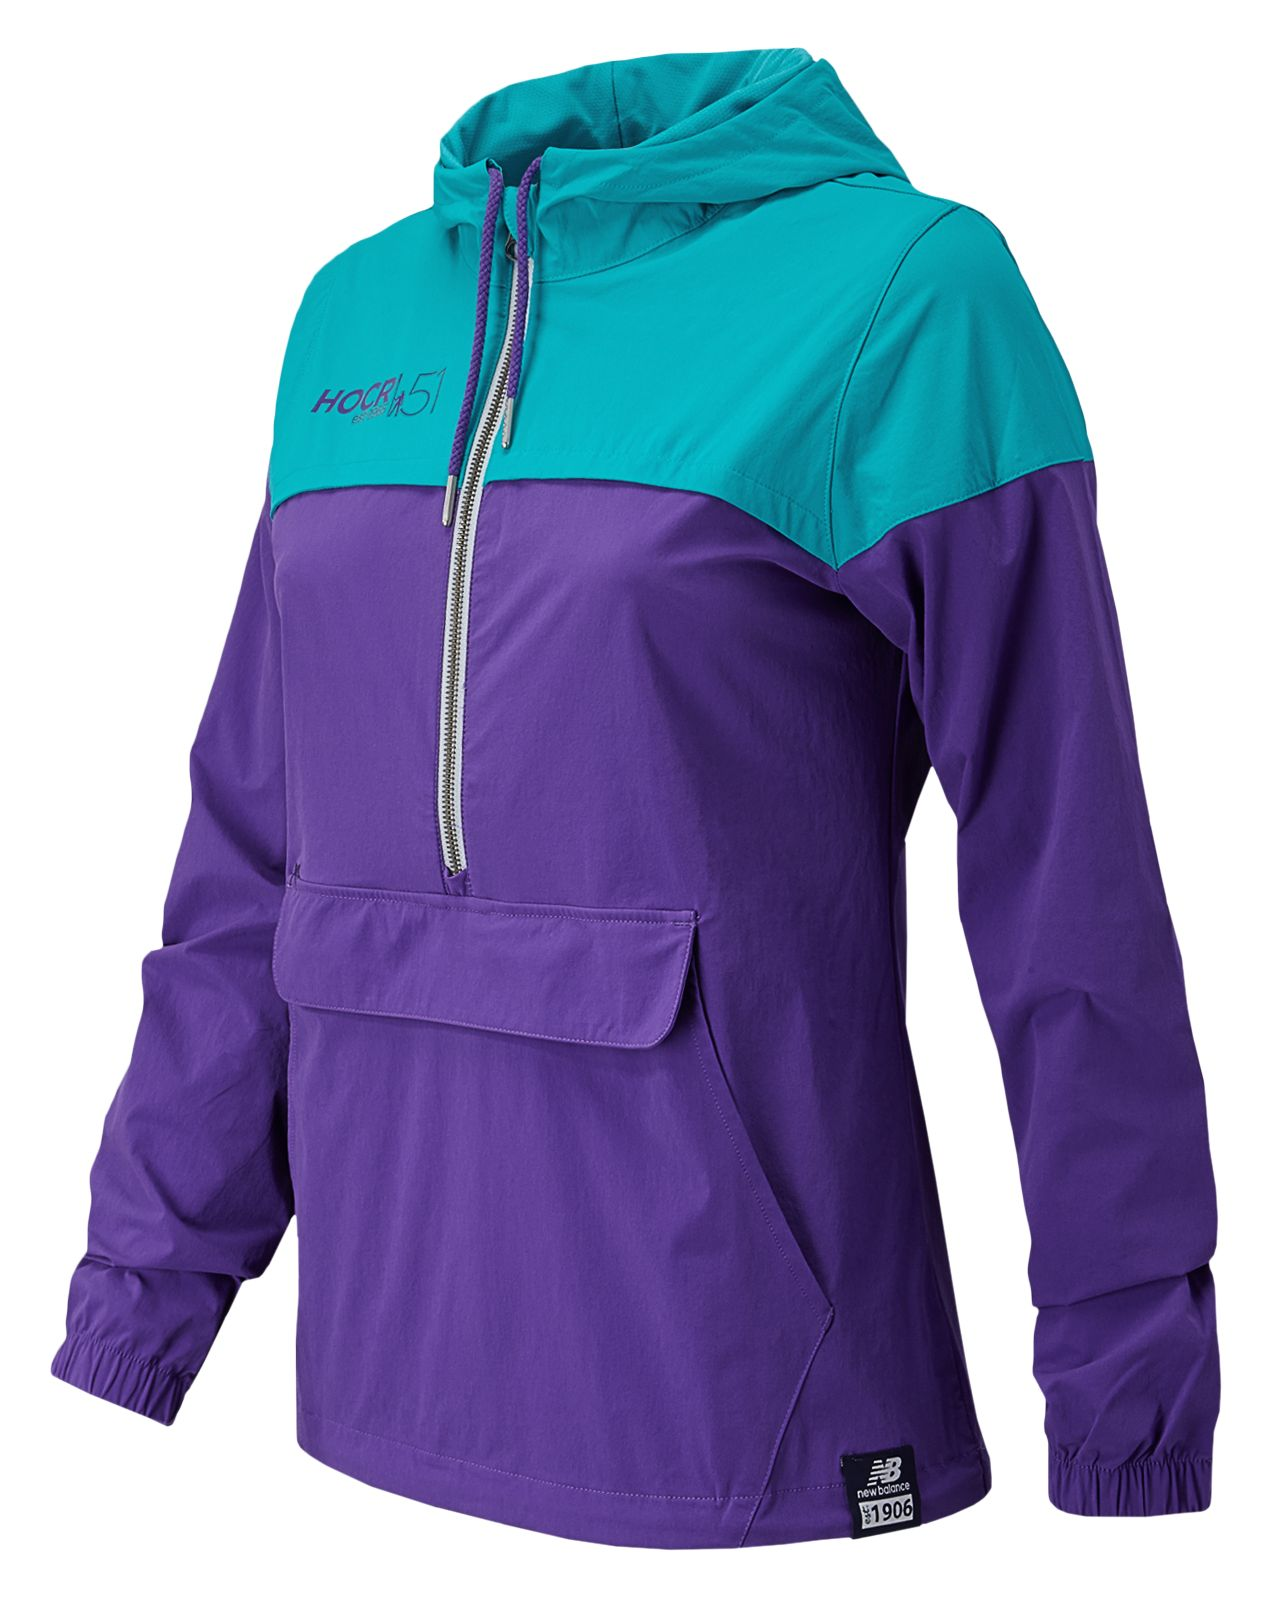 New Balance Hocr Essentials Plus 90s Windbreaker Womens Jackets  -  Wj